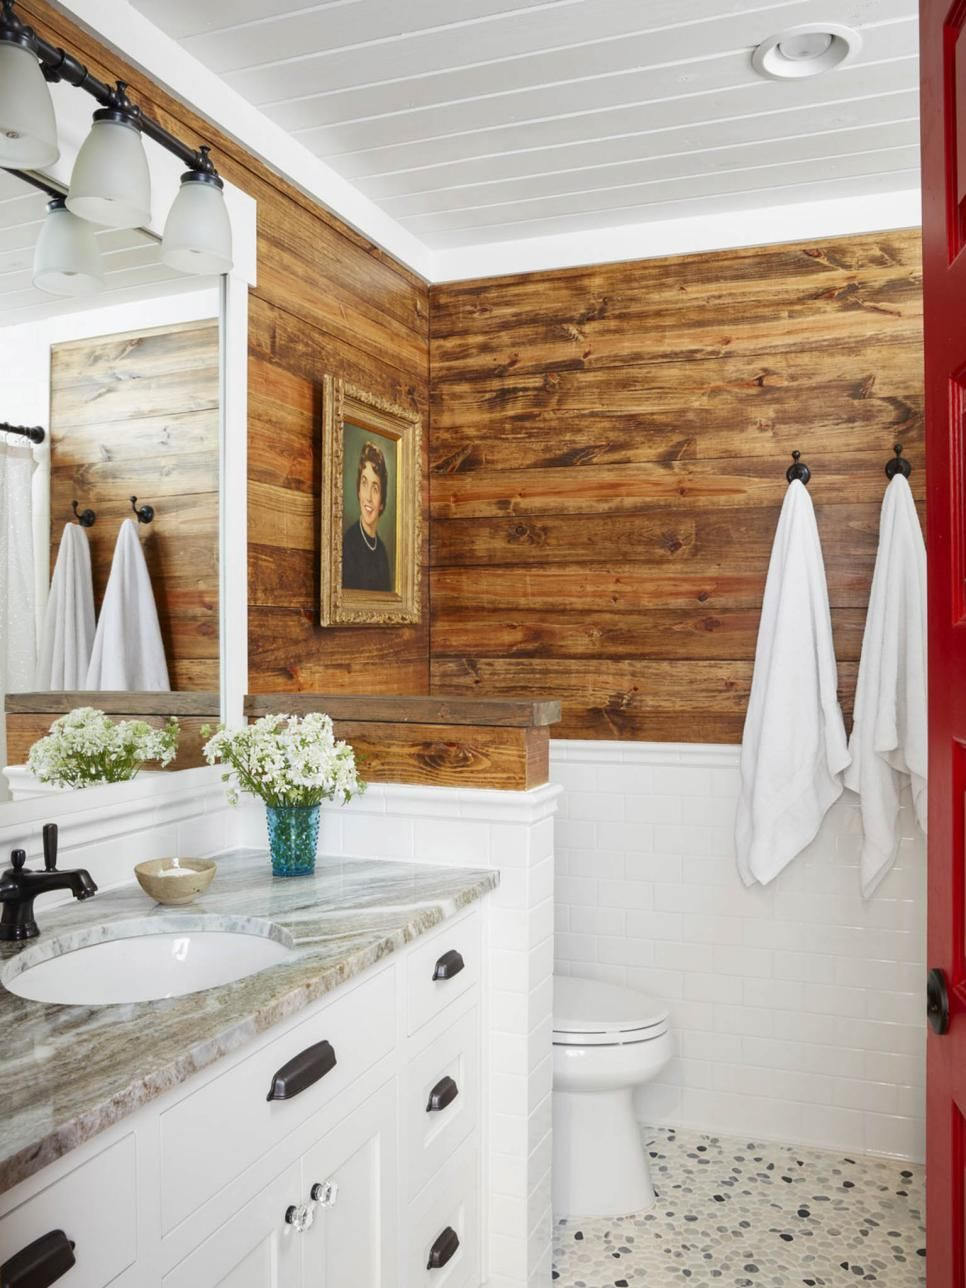 Inside homes bathrooms - Hgtv Magazine Takes You Inside A Lake House That Pairs Rustic Touches With Modern Decor